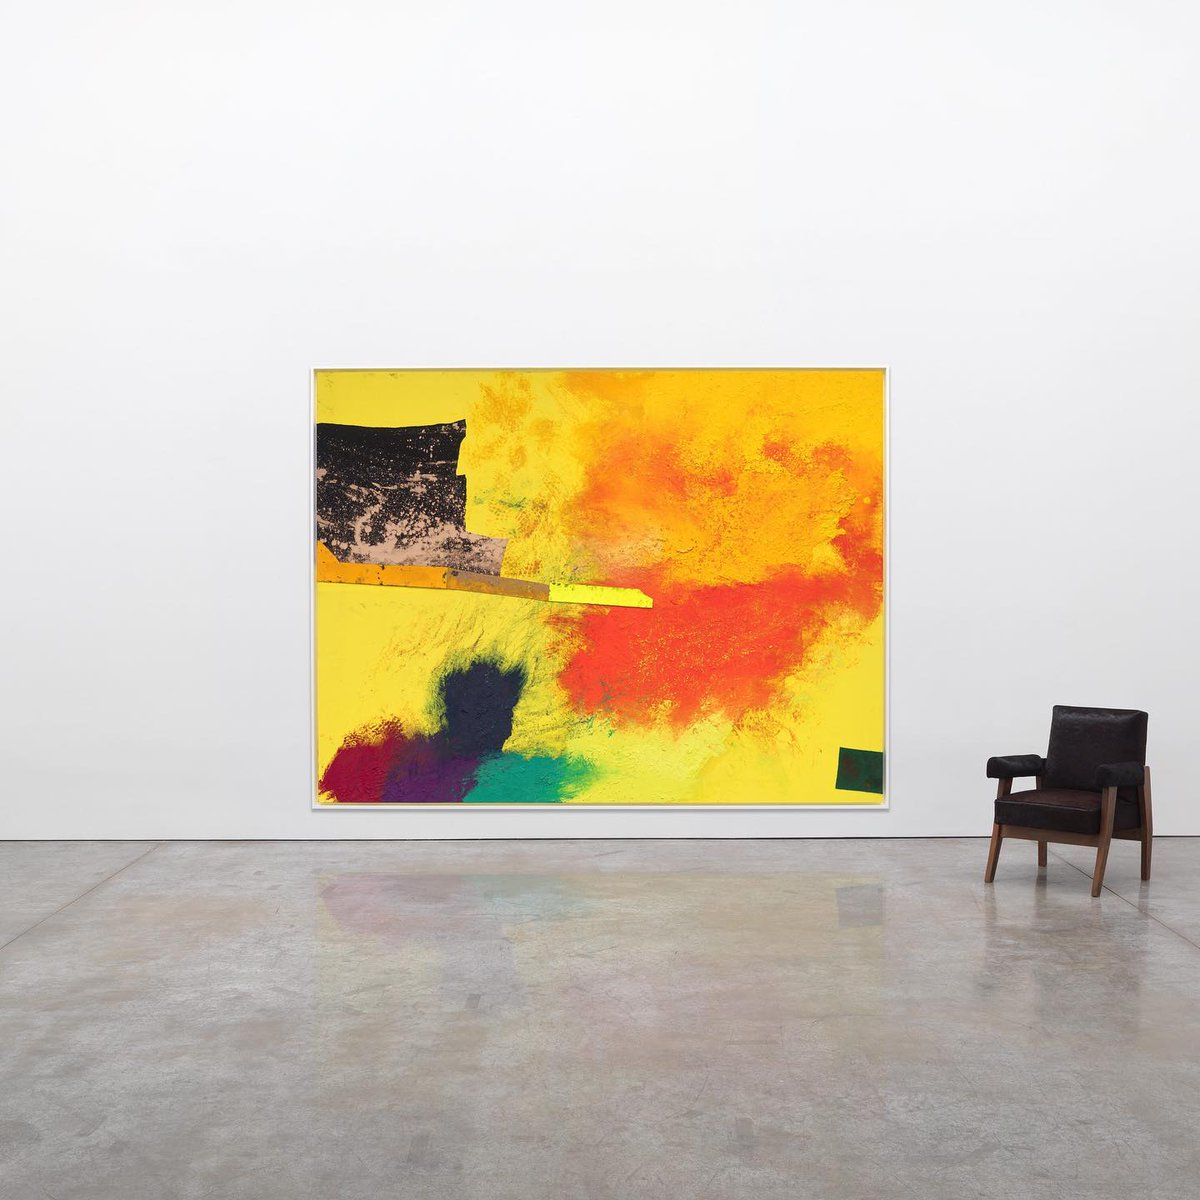 #GagosianViewingRoom: The Frieze London Online Viewing Room, developed in collaboration with #SterlingRuby, will feature seven primary-market artworks from Rubys personal archive, paired with pertinent works by historical artists. Sign up now! on.gagosian.com/SsA1d12